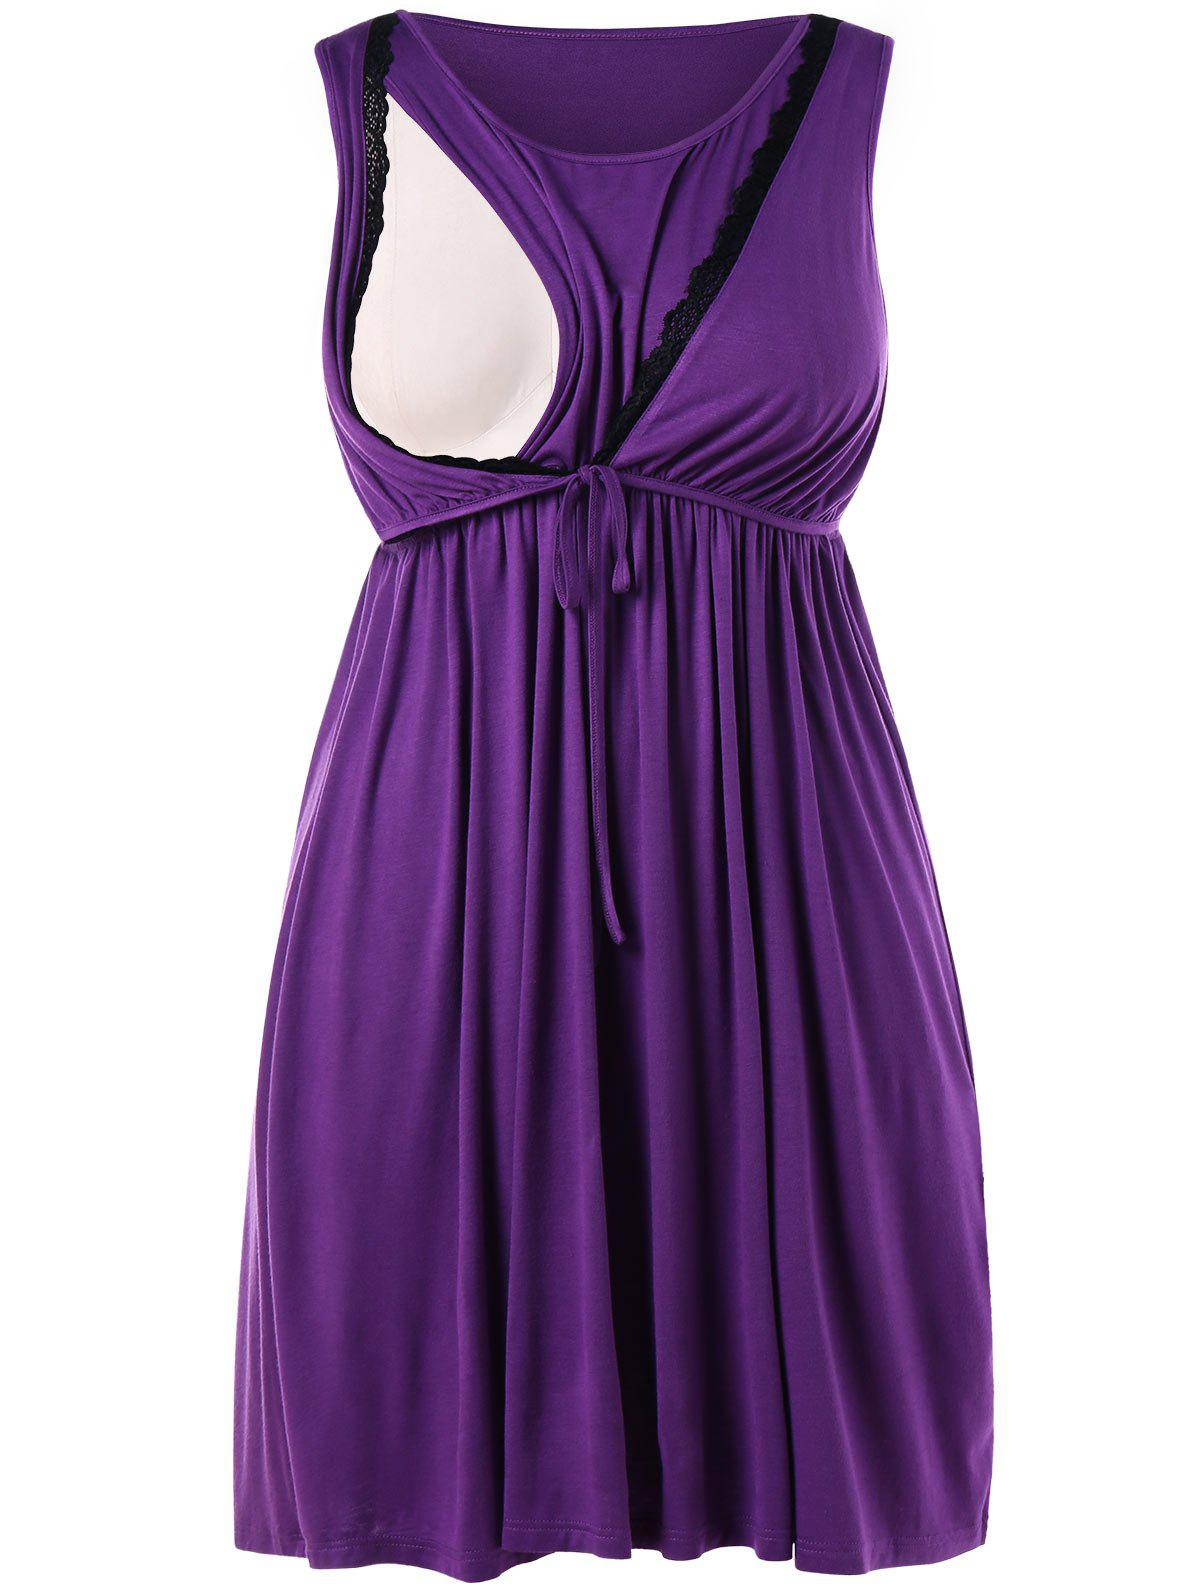 Sleeveless Plus Size Drawstring Waist Nursing Dress - VIOLET 5X